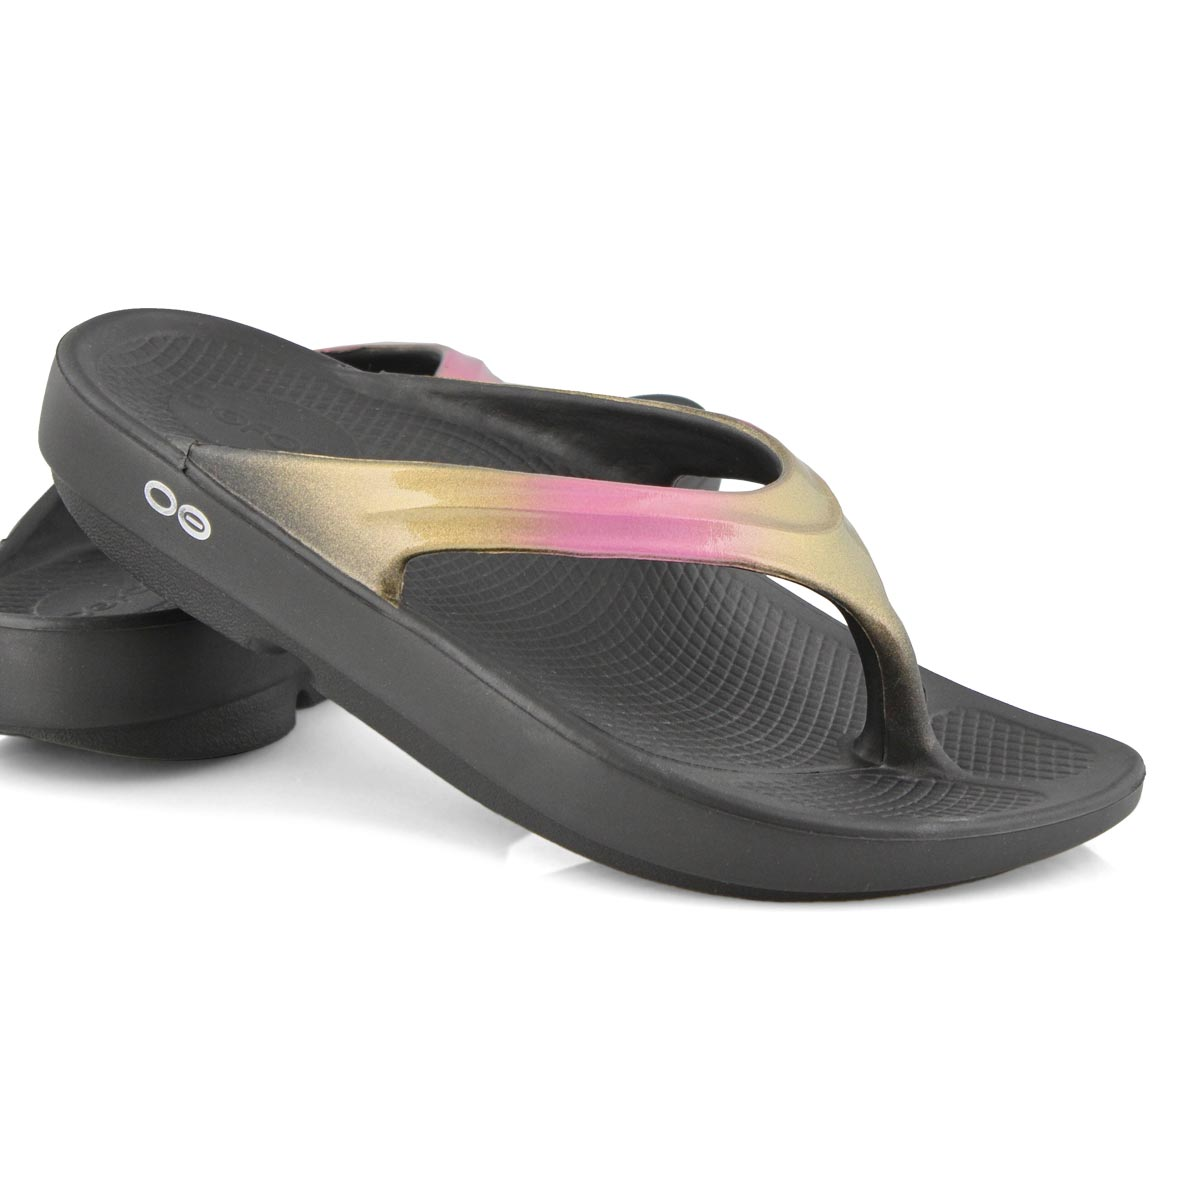 Women's Oolala Luxe Thong Sandal - Black/Rose Gold